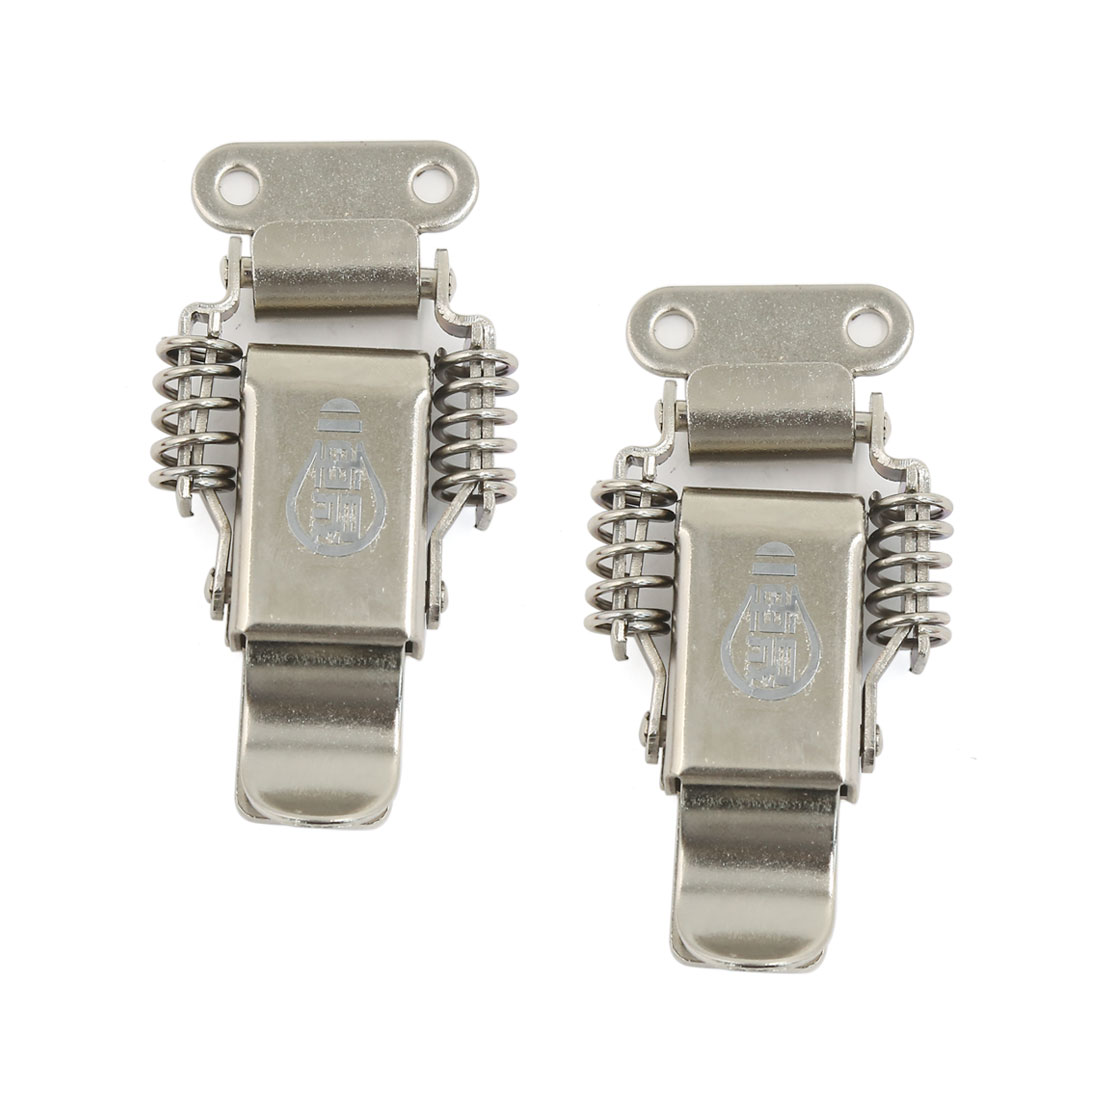 2 Pcs Sliver Tone Stainless Steel Cabinet Boxes Spring Loaded Draw Toggle Latch